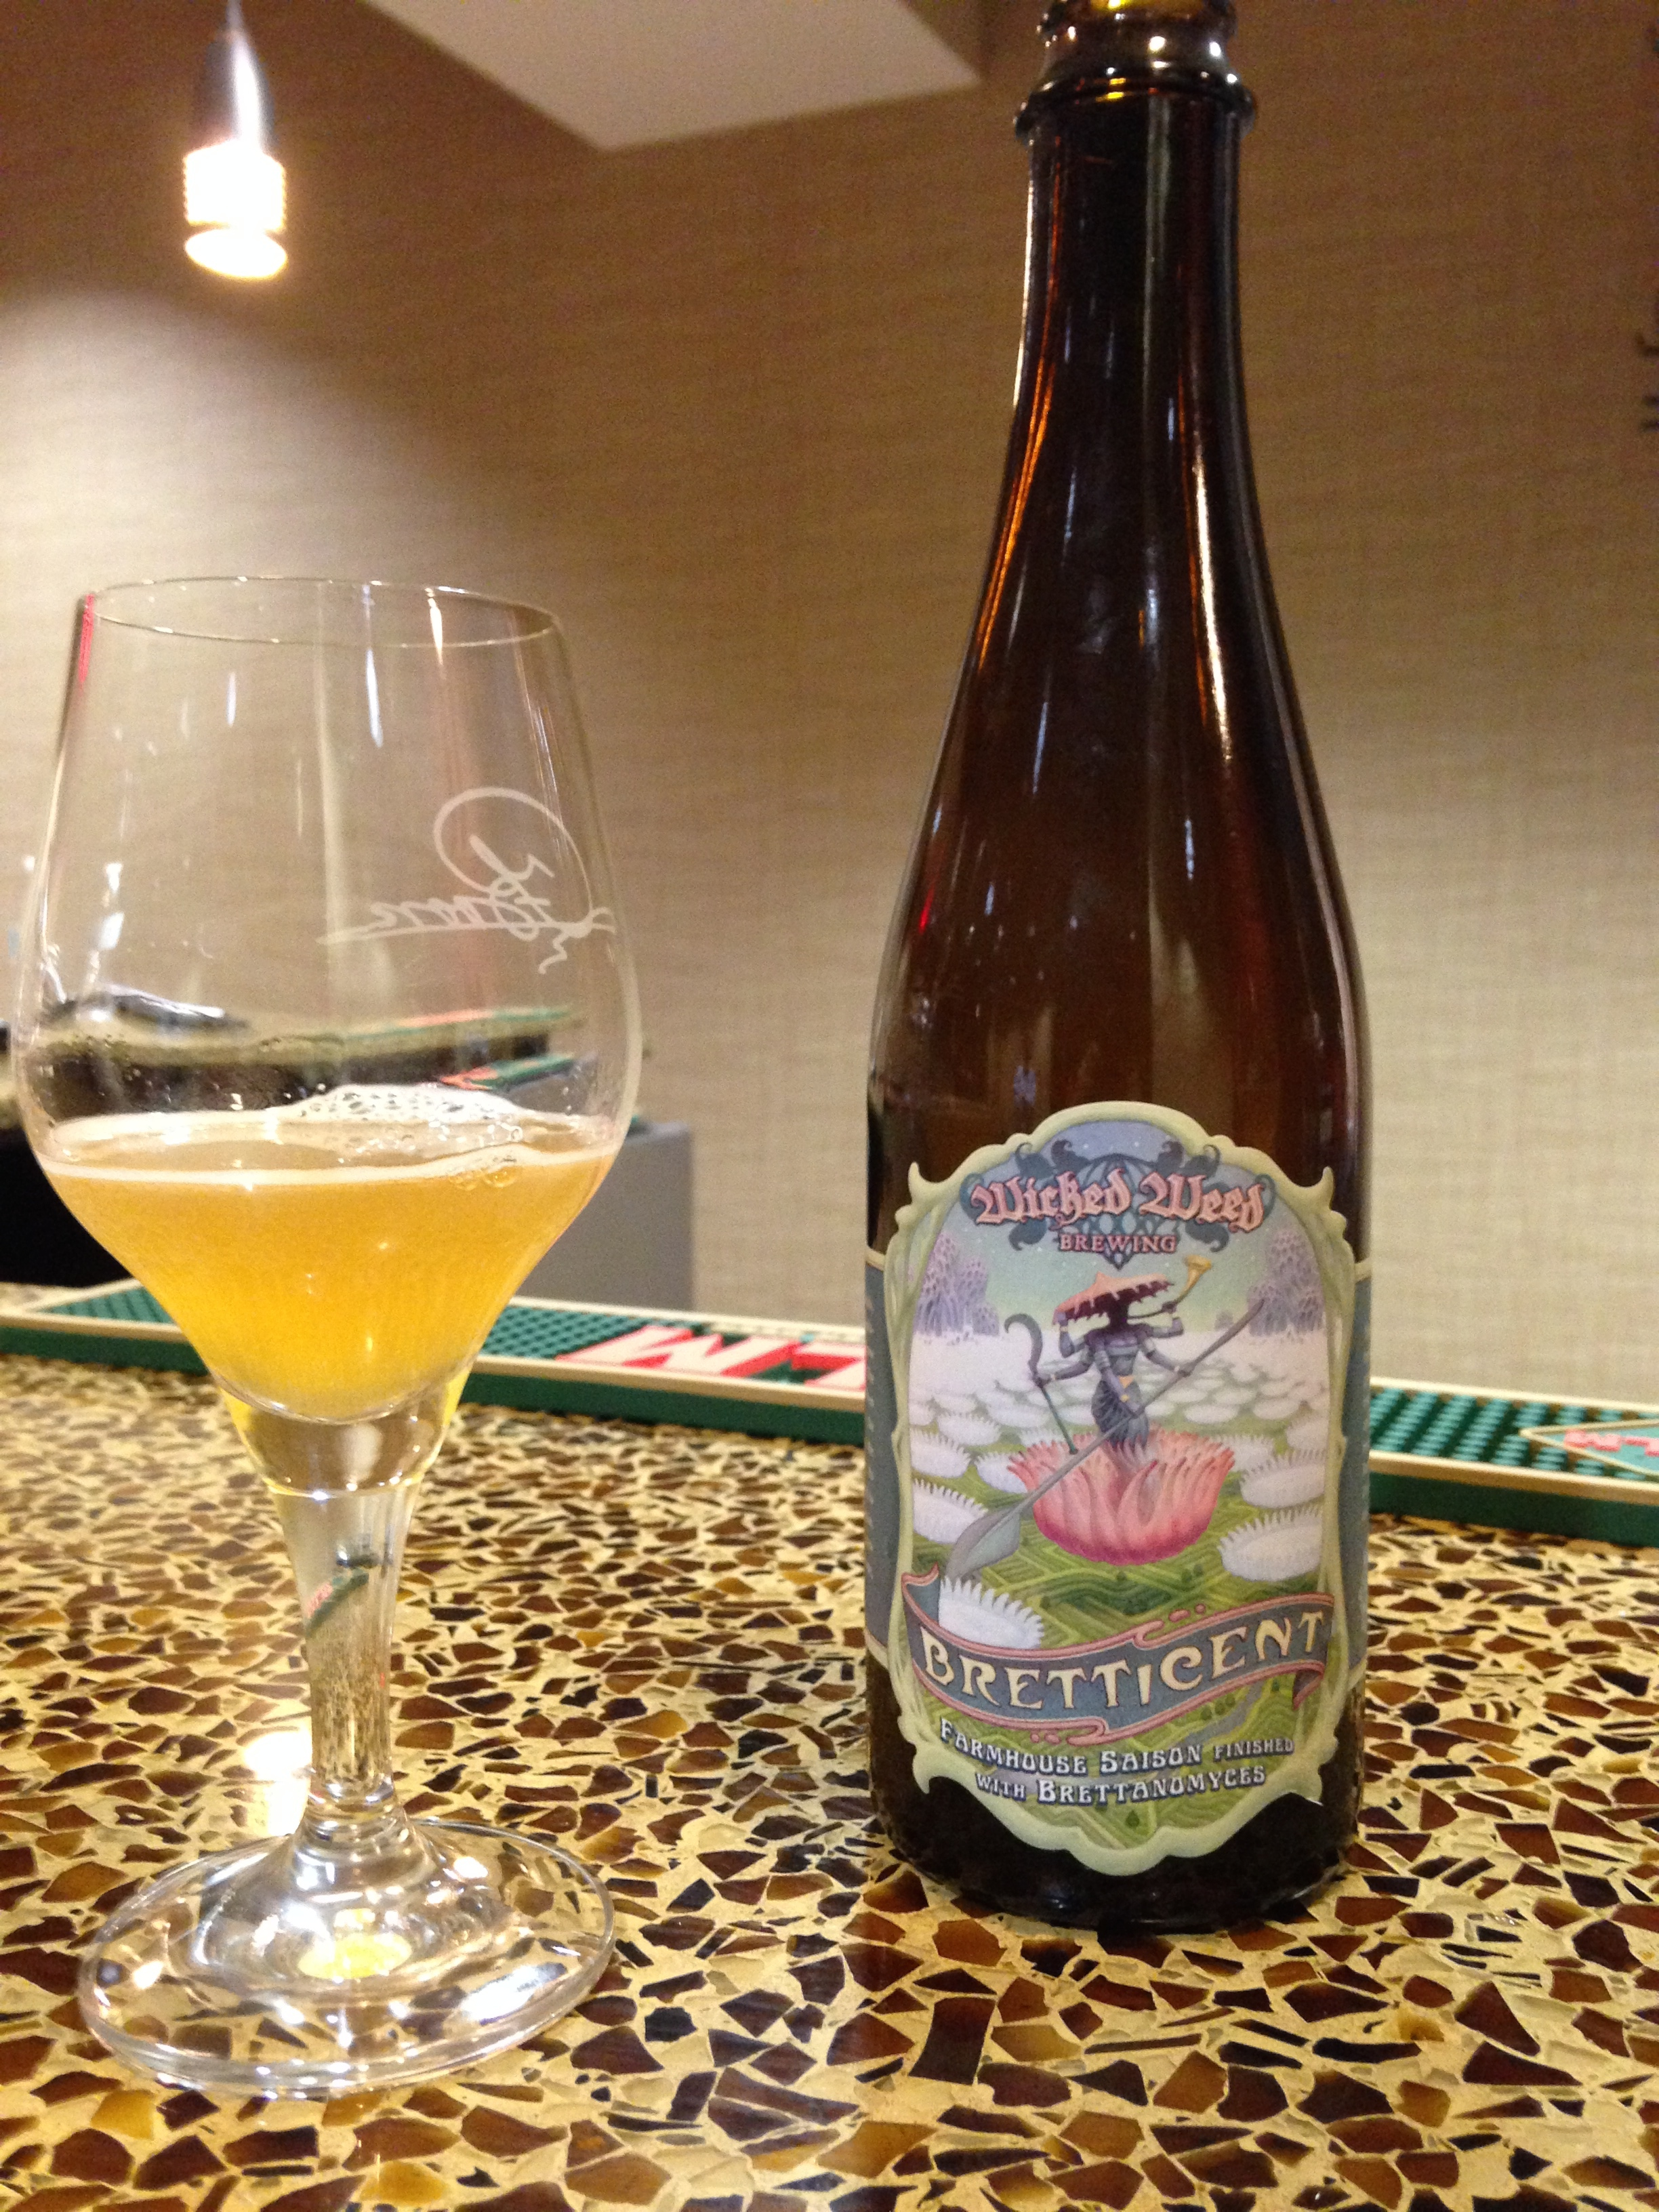 Bretticent Saison beer